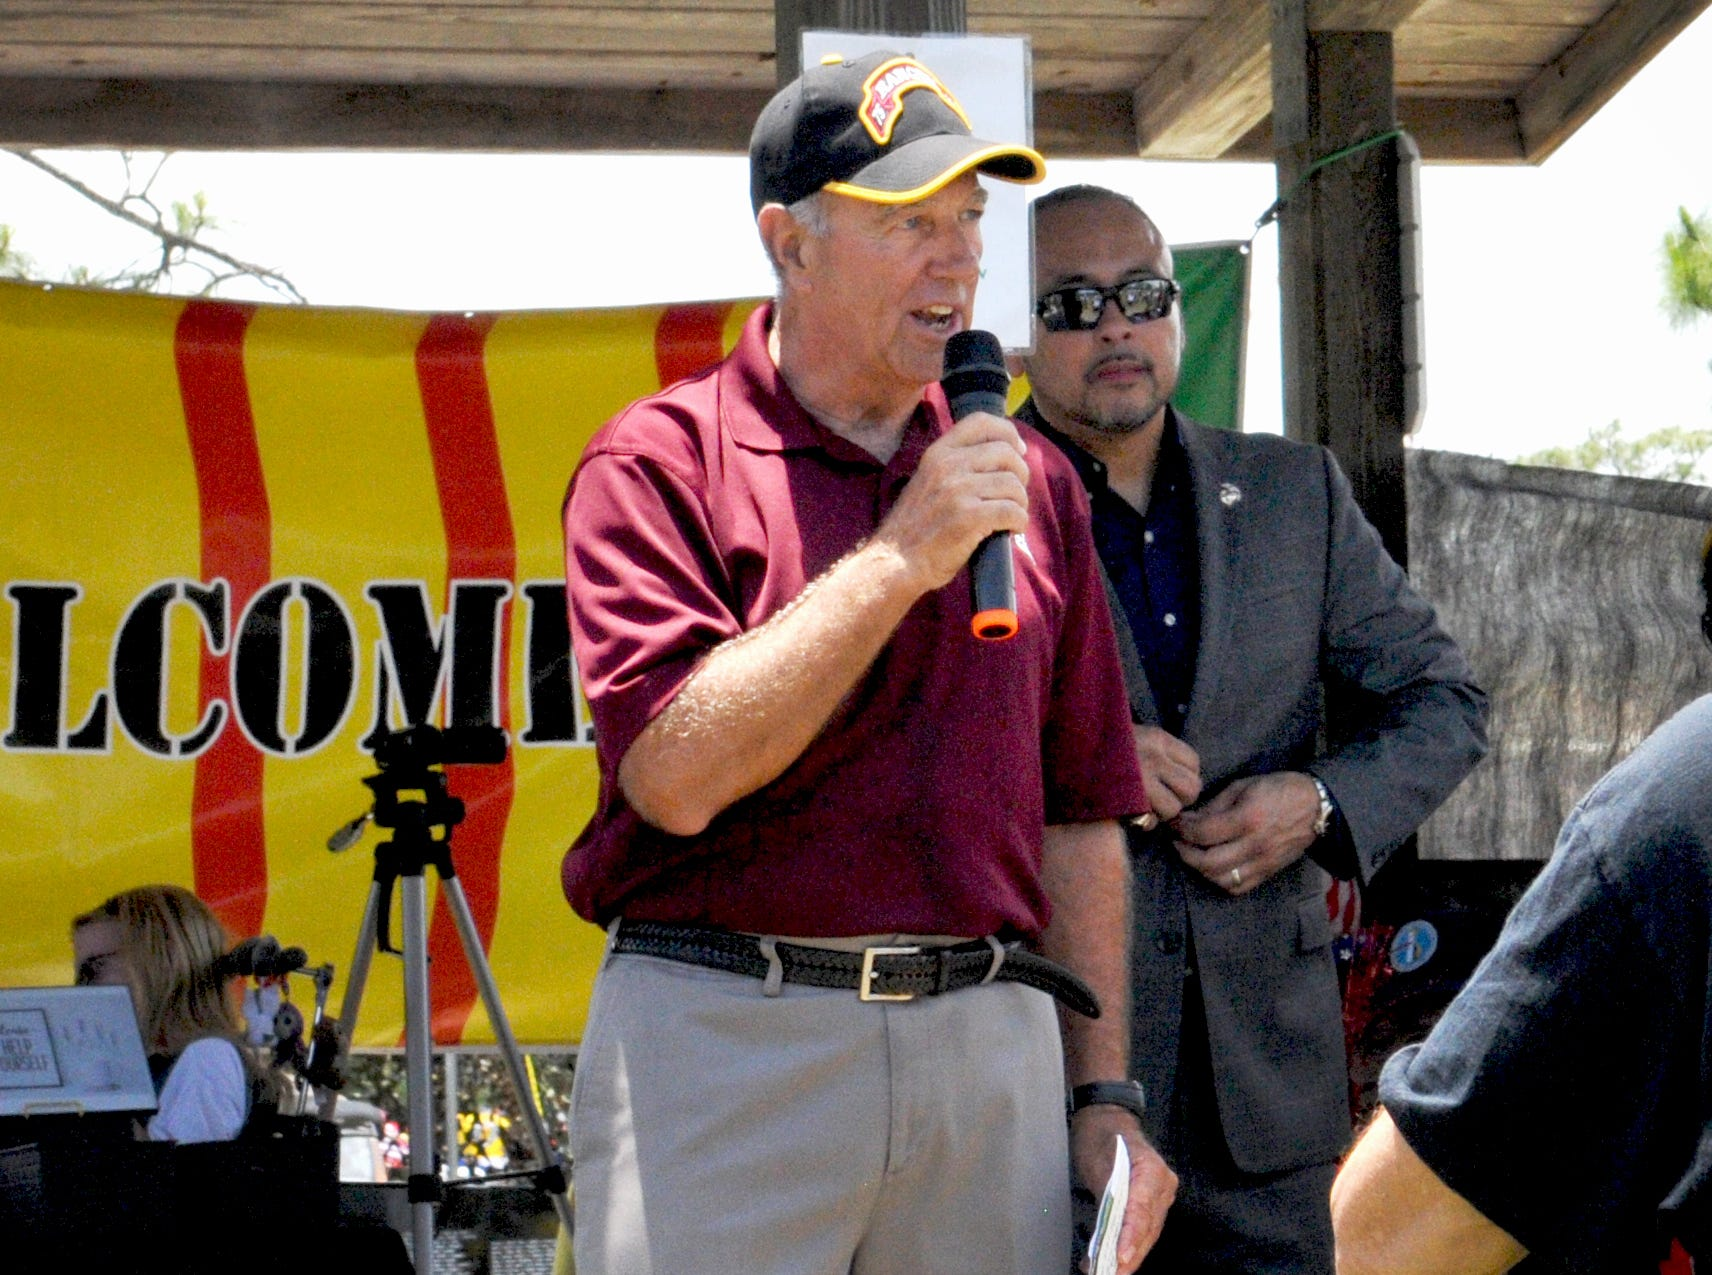 The keynote speaker was Colonel Danny McKnight, U.S. Army (Ret). Welcome Home Vietnam & Vietnam Era Veterans, a 1:00pm Saturday event held at the Vietnam Traveling Memorial Wall at Wickham Park in Melbourne. This is part of the Vietnam and All Veterans Reunion that continues until Sunday, May 12.